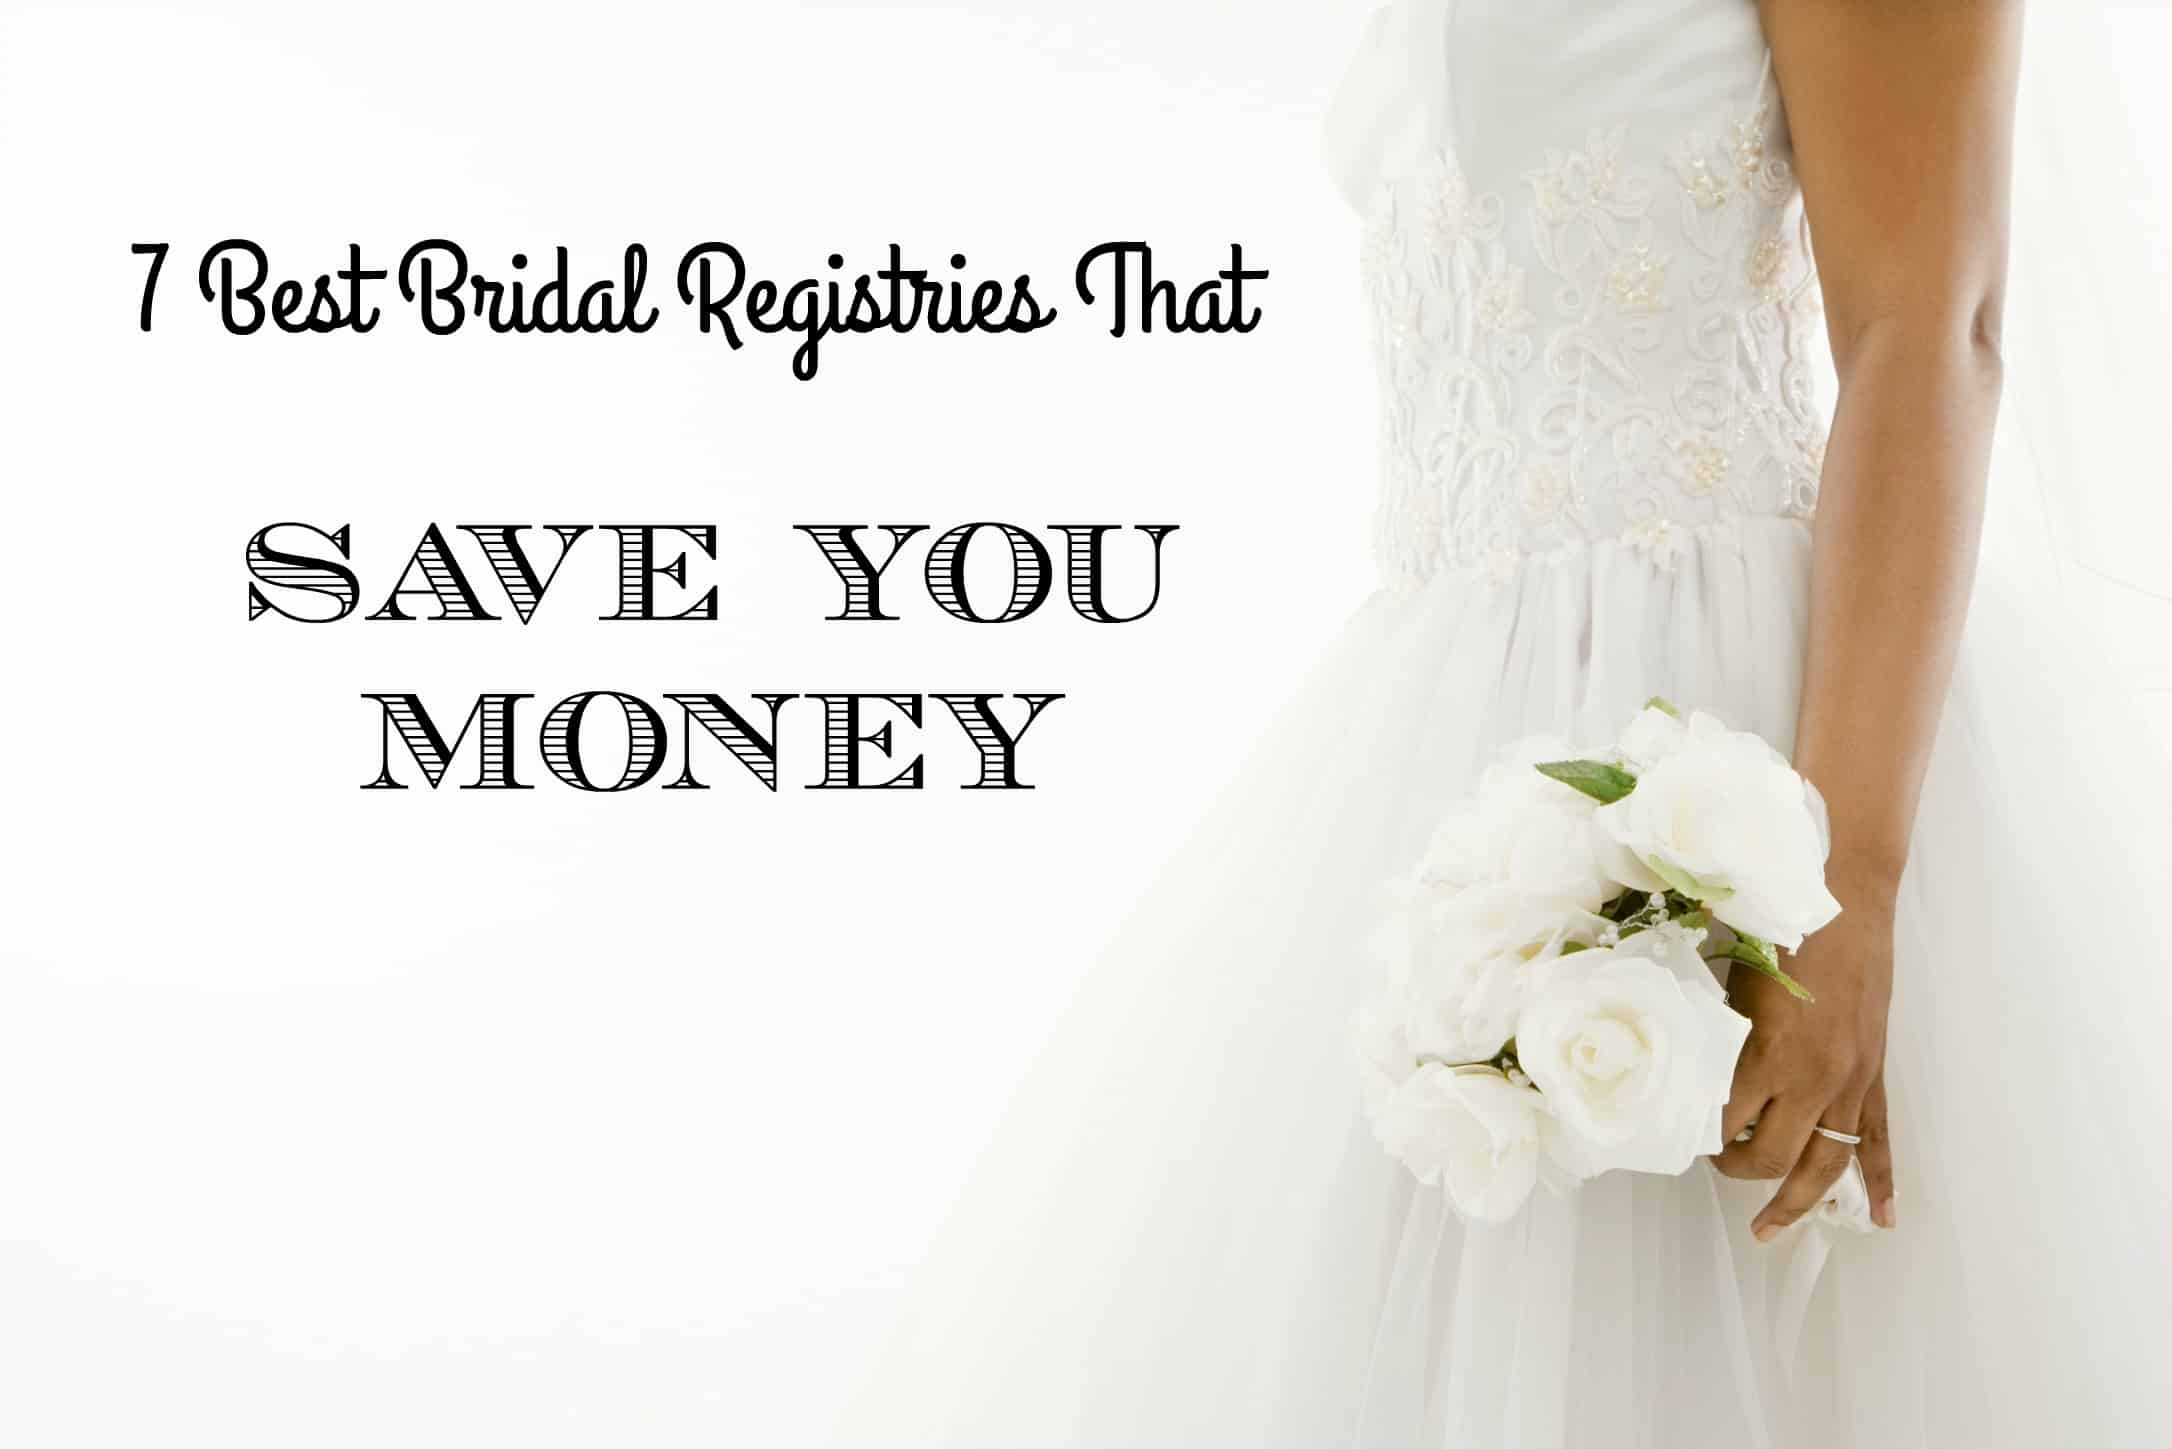 7 Best Bridal Registry Programs That Save You Money Leah Ingram